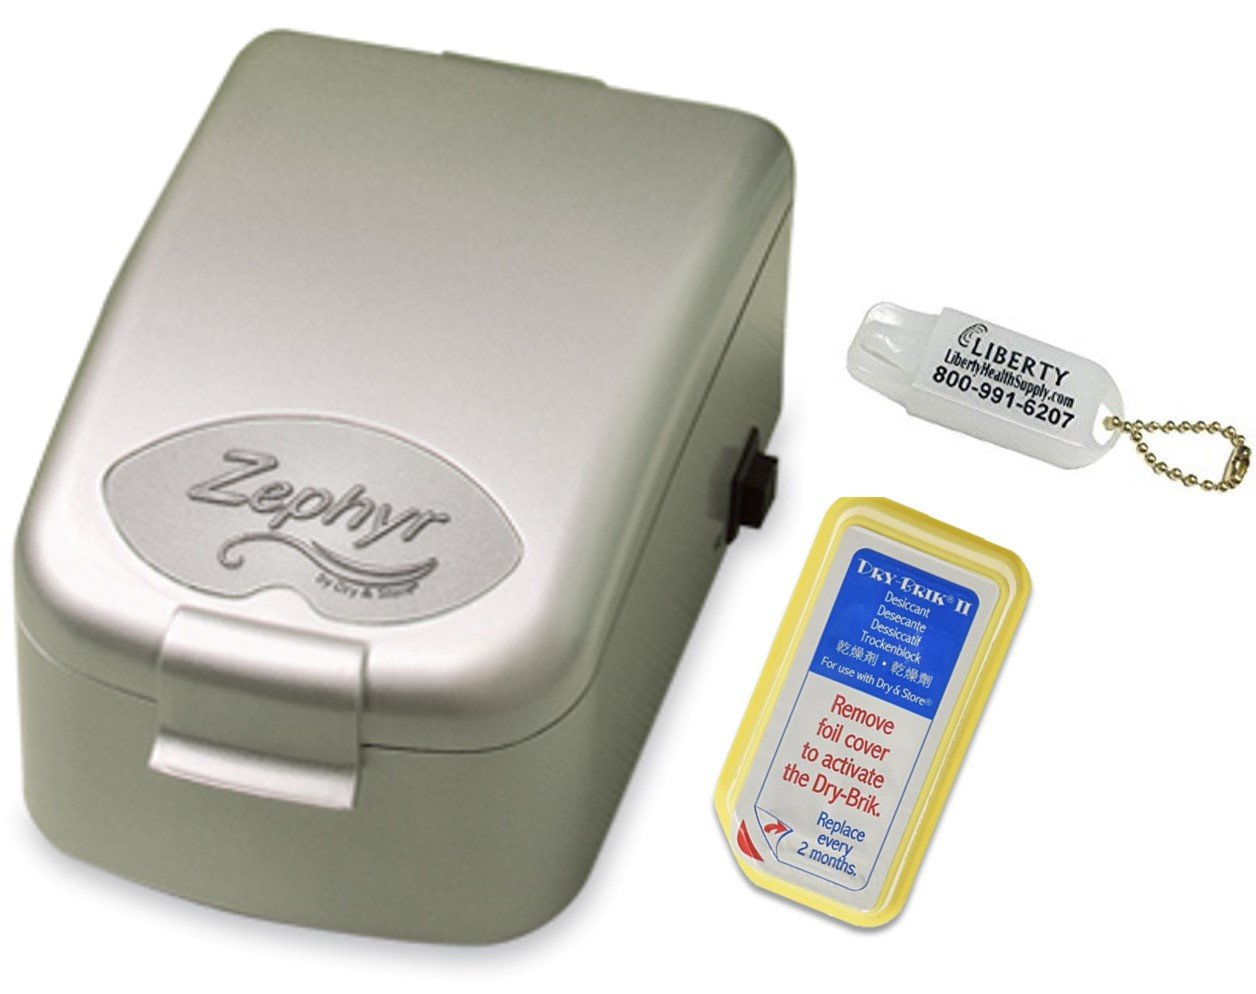 Zephyr Dry & Store Hearing Aid Dryer with Carrying Case and Liberty Hearing Aid Battery Keychain by Dry and Store